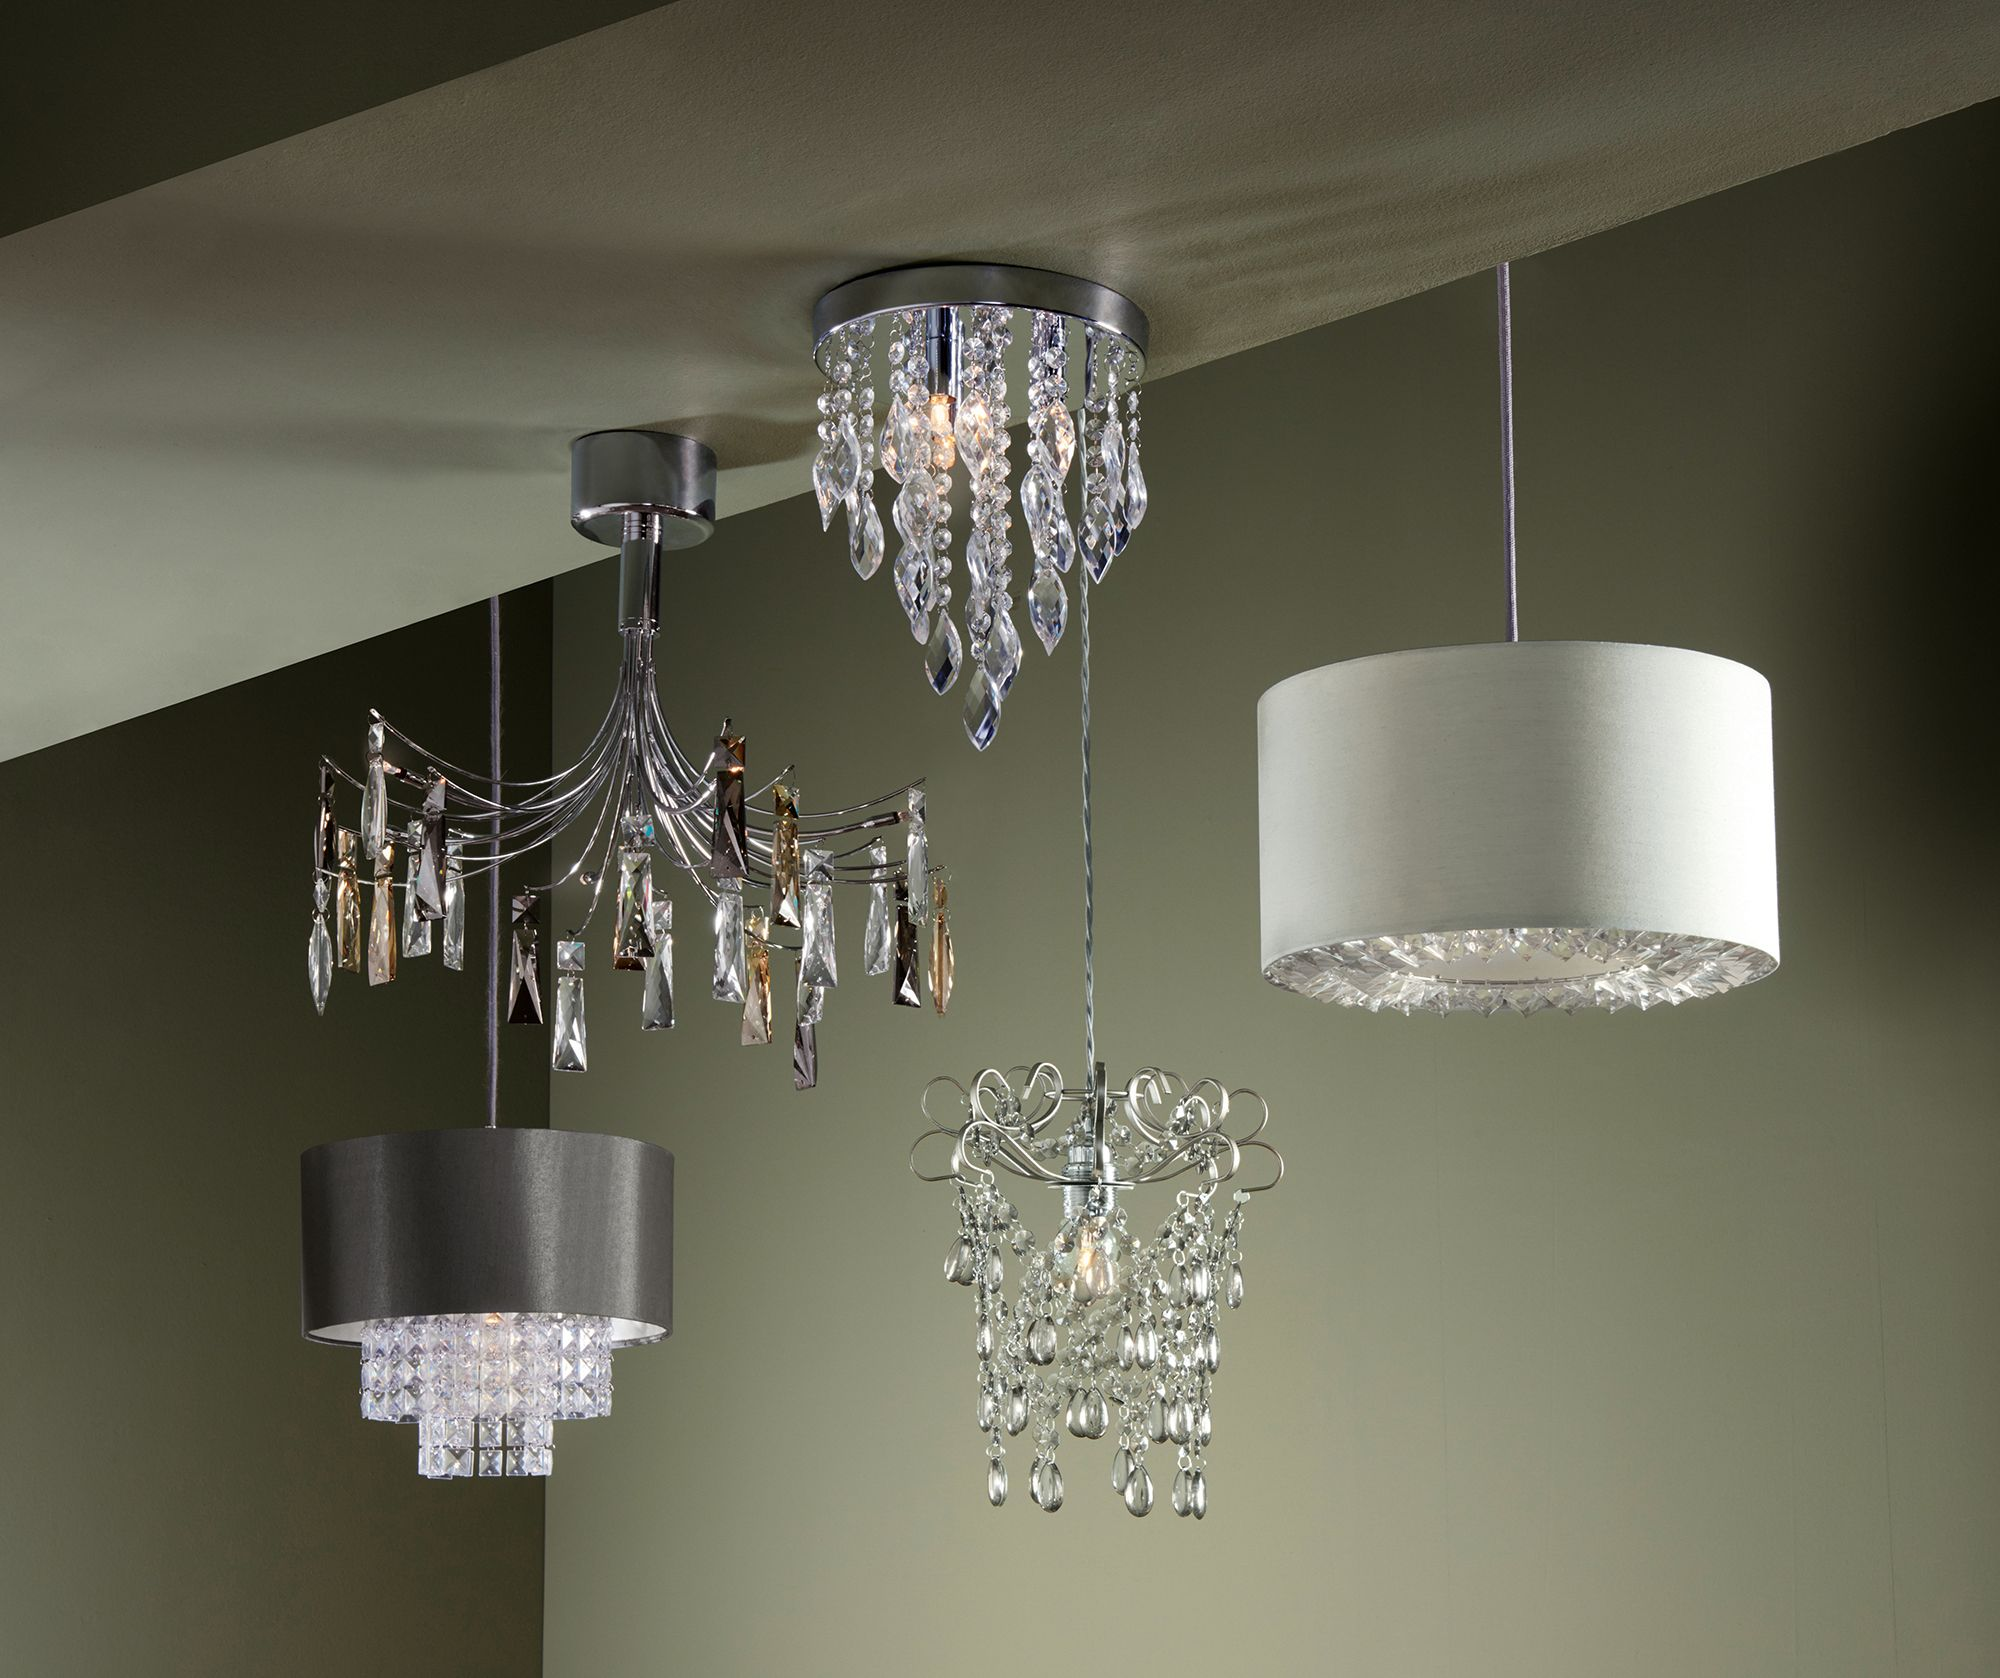 stylish lighting. This Season We\u0027re Loving Stylish Lighting! Some People Forget About How Much Lighting I